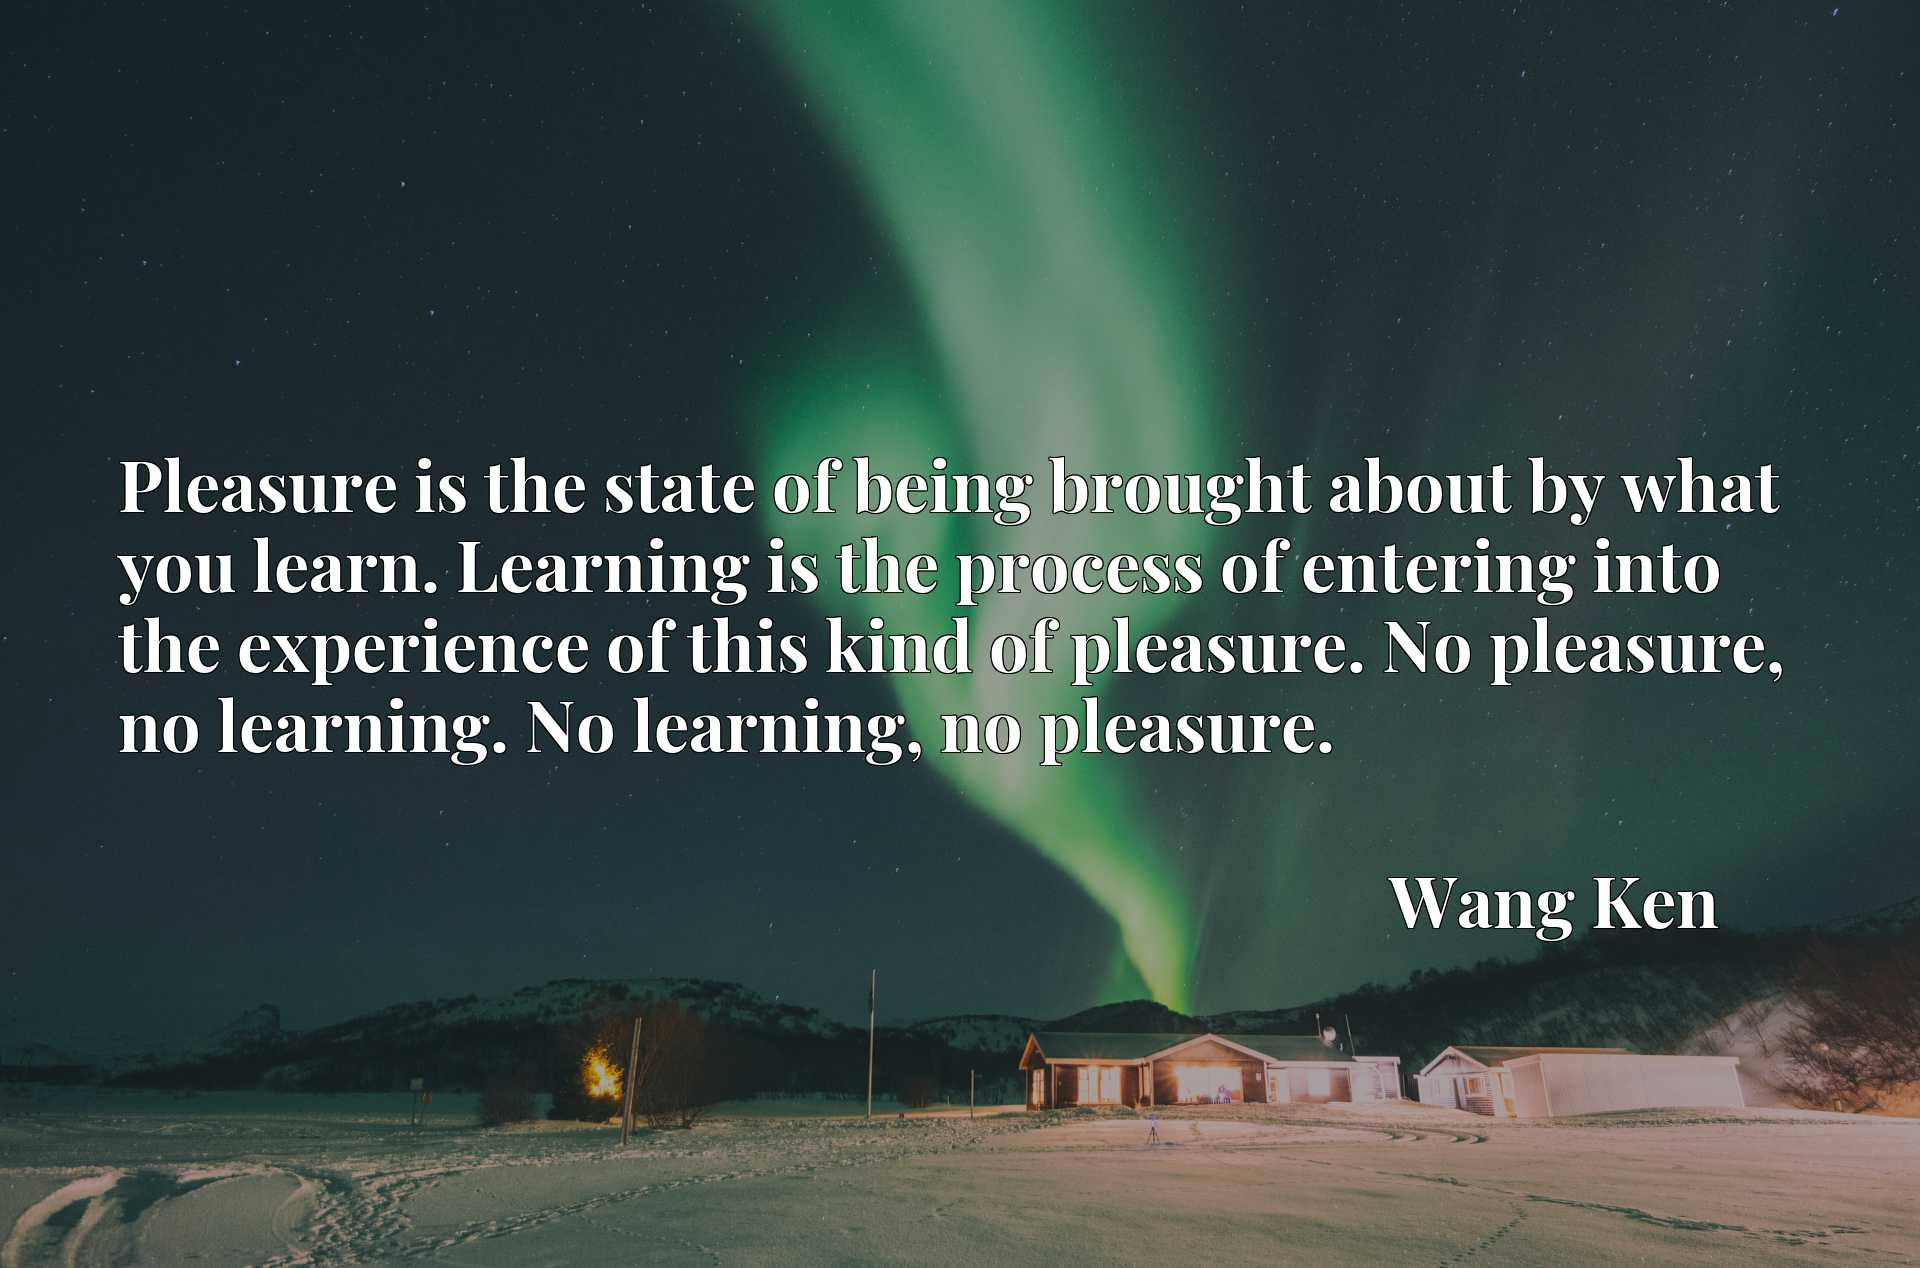 Pleasure is the state of being brought about by what you learn. Learning is the process of entering into the experience of this kind of pleasure. No pleasure, no learning. No learning, no pleasure.